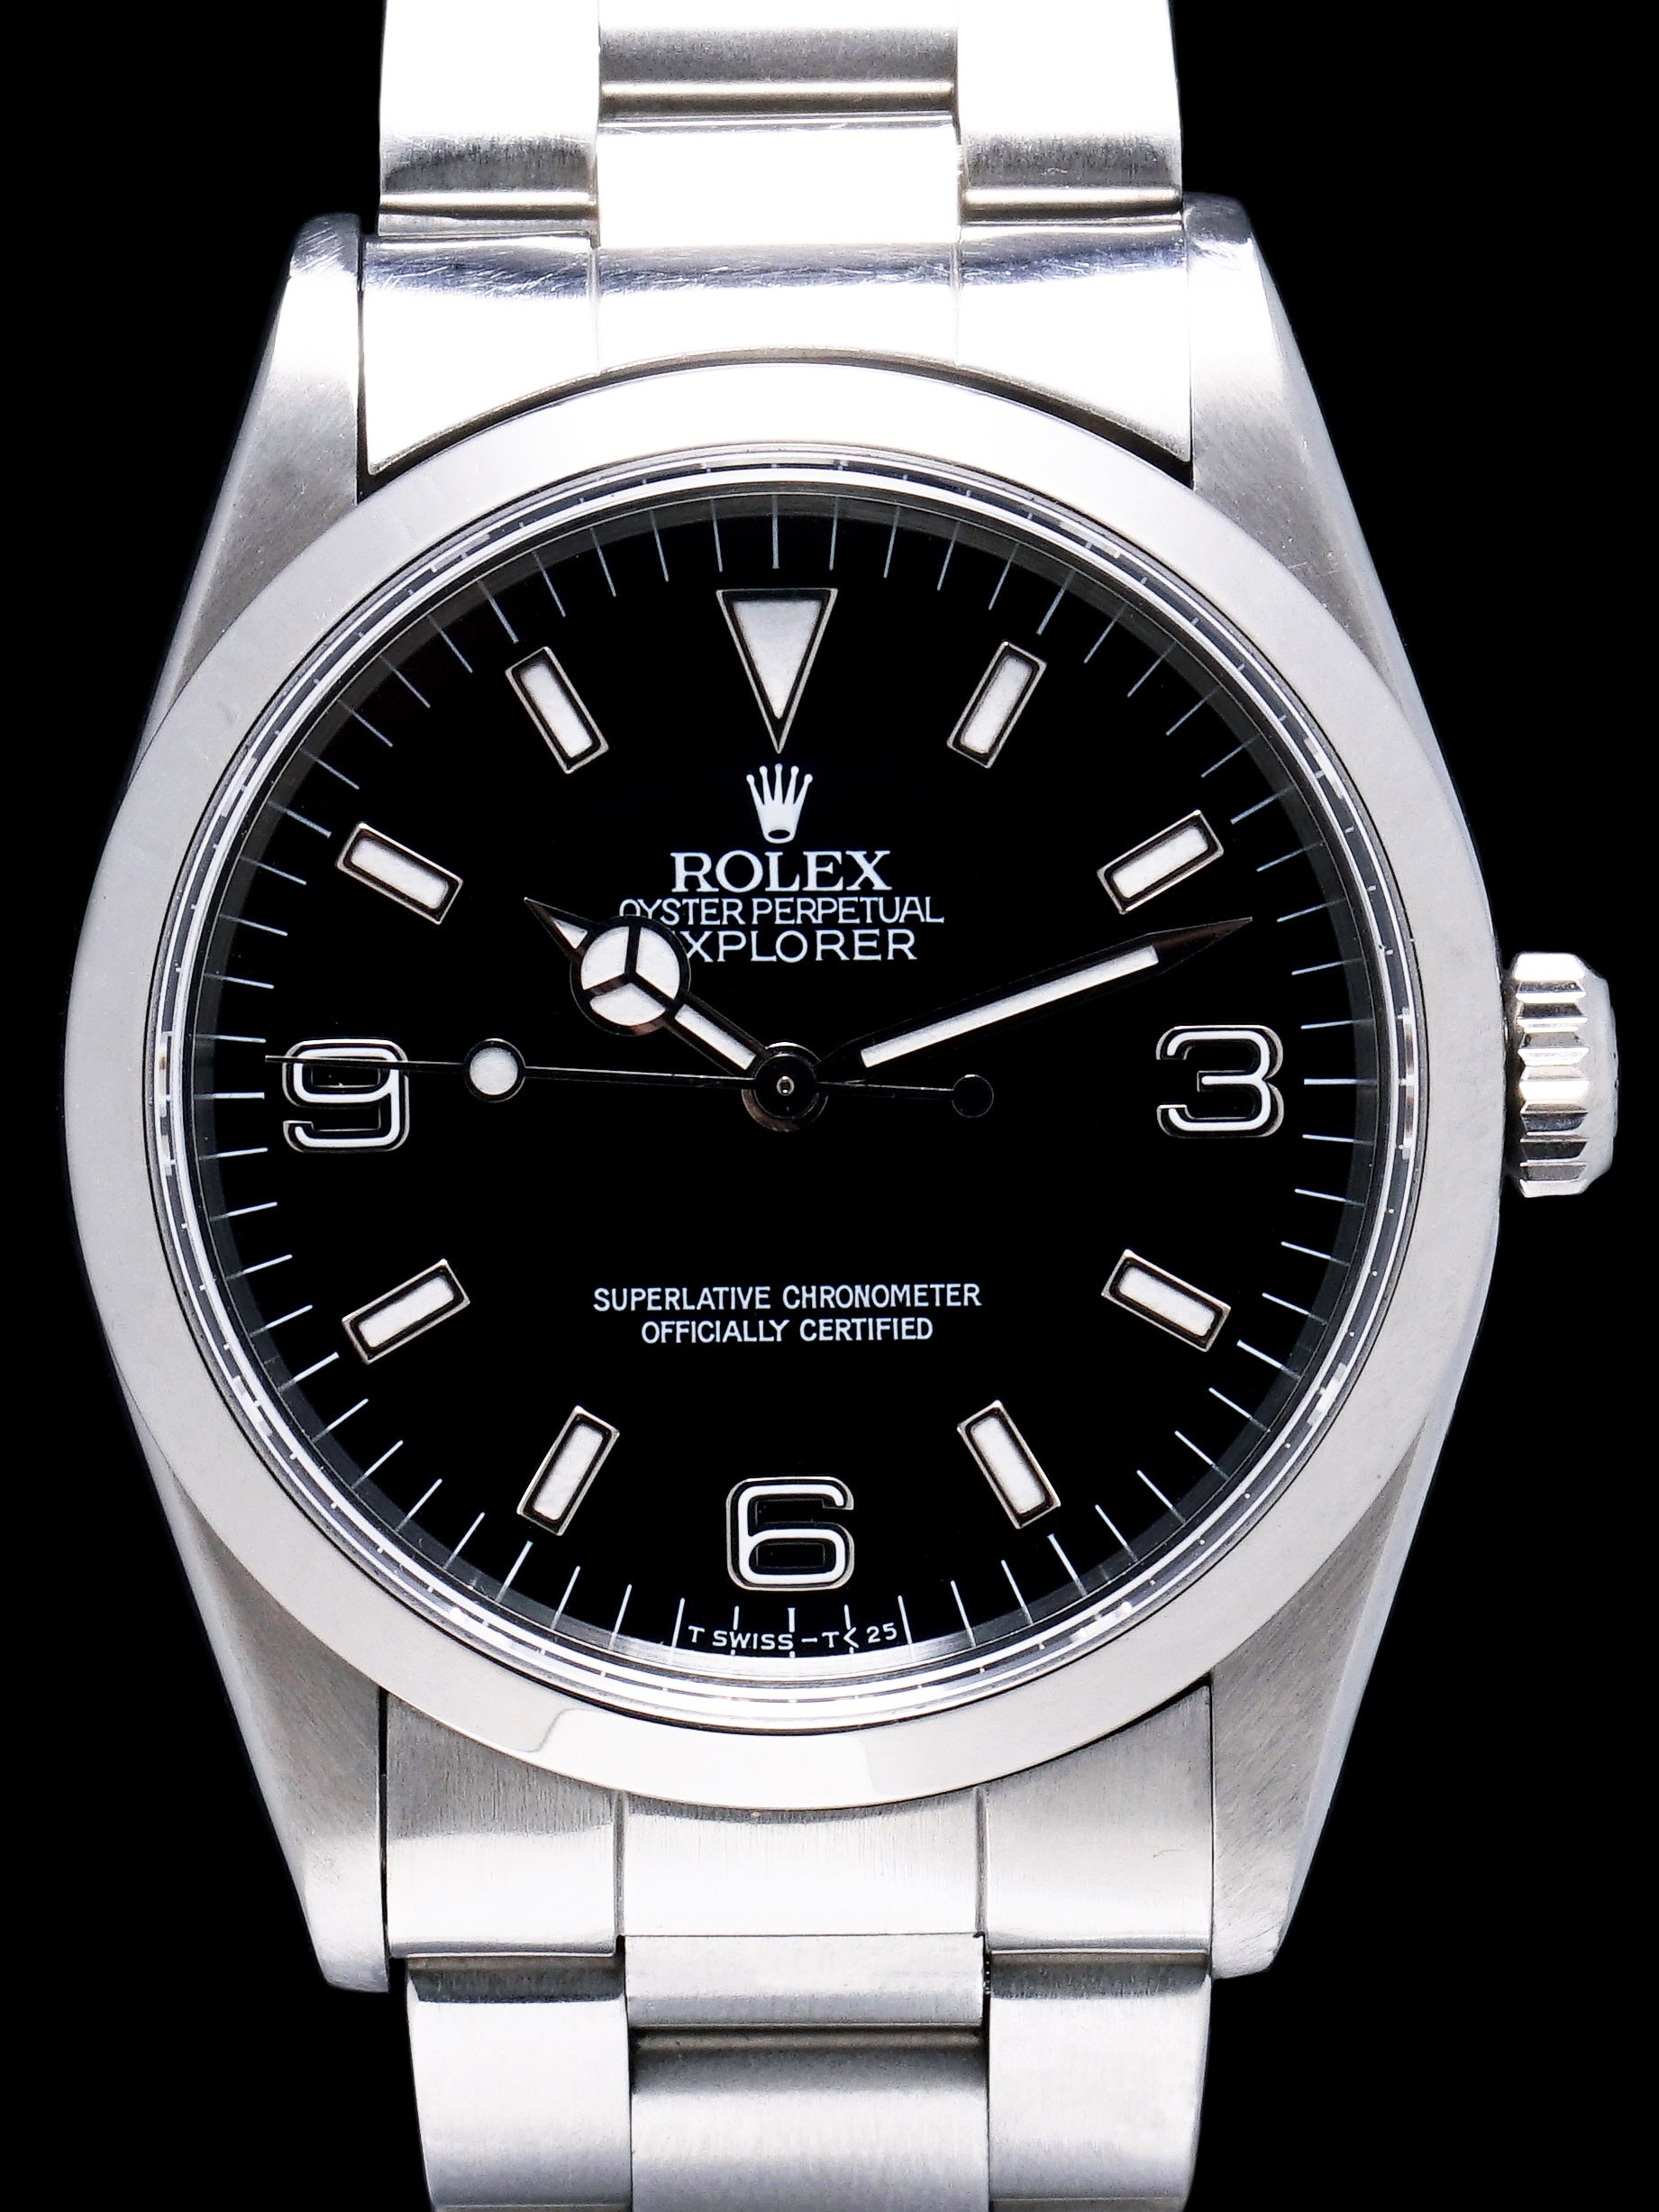 1997 Rolex Explorer I (Ref. 14270) With Box and Papers